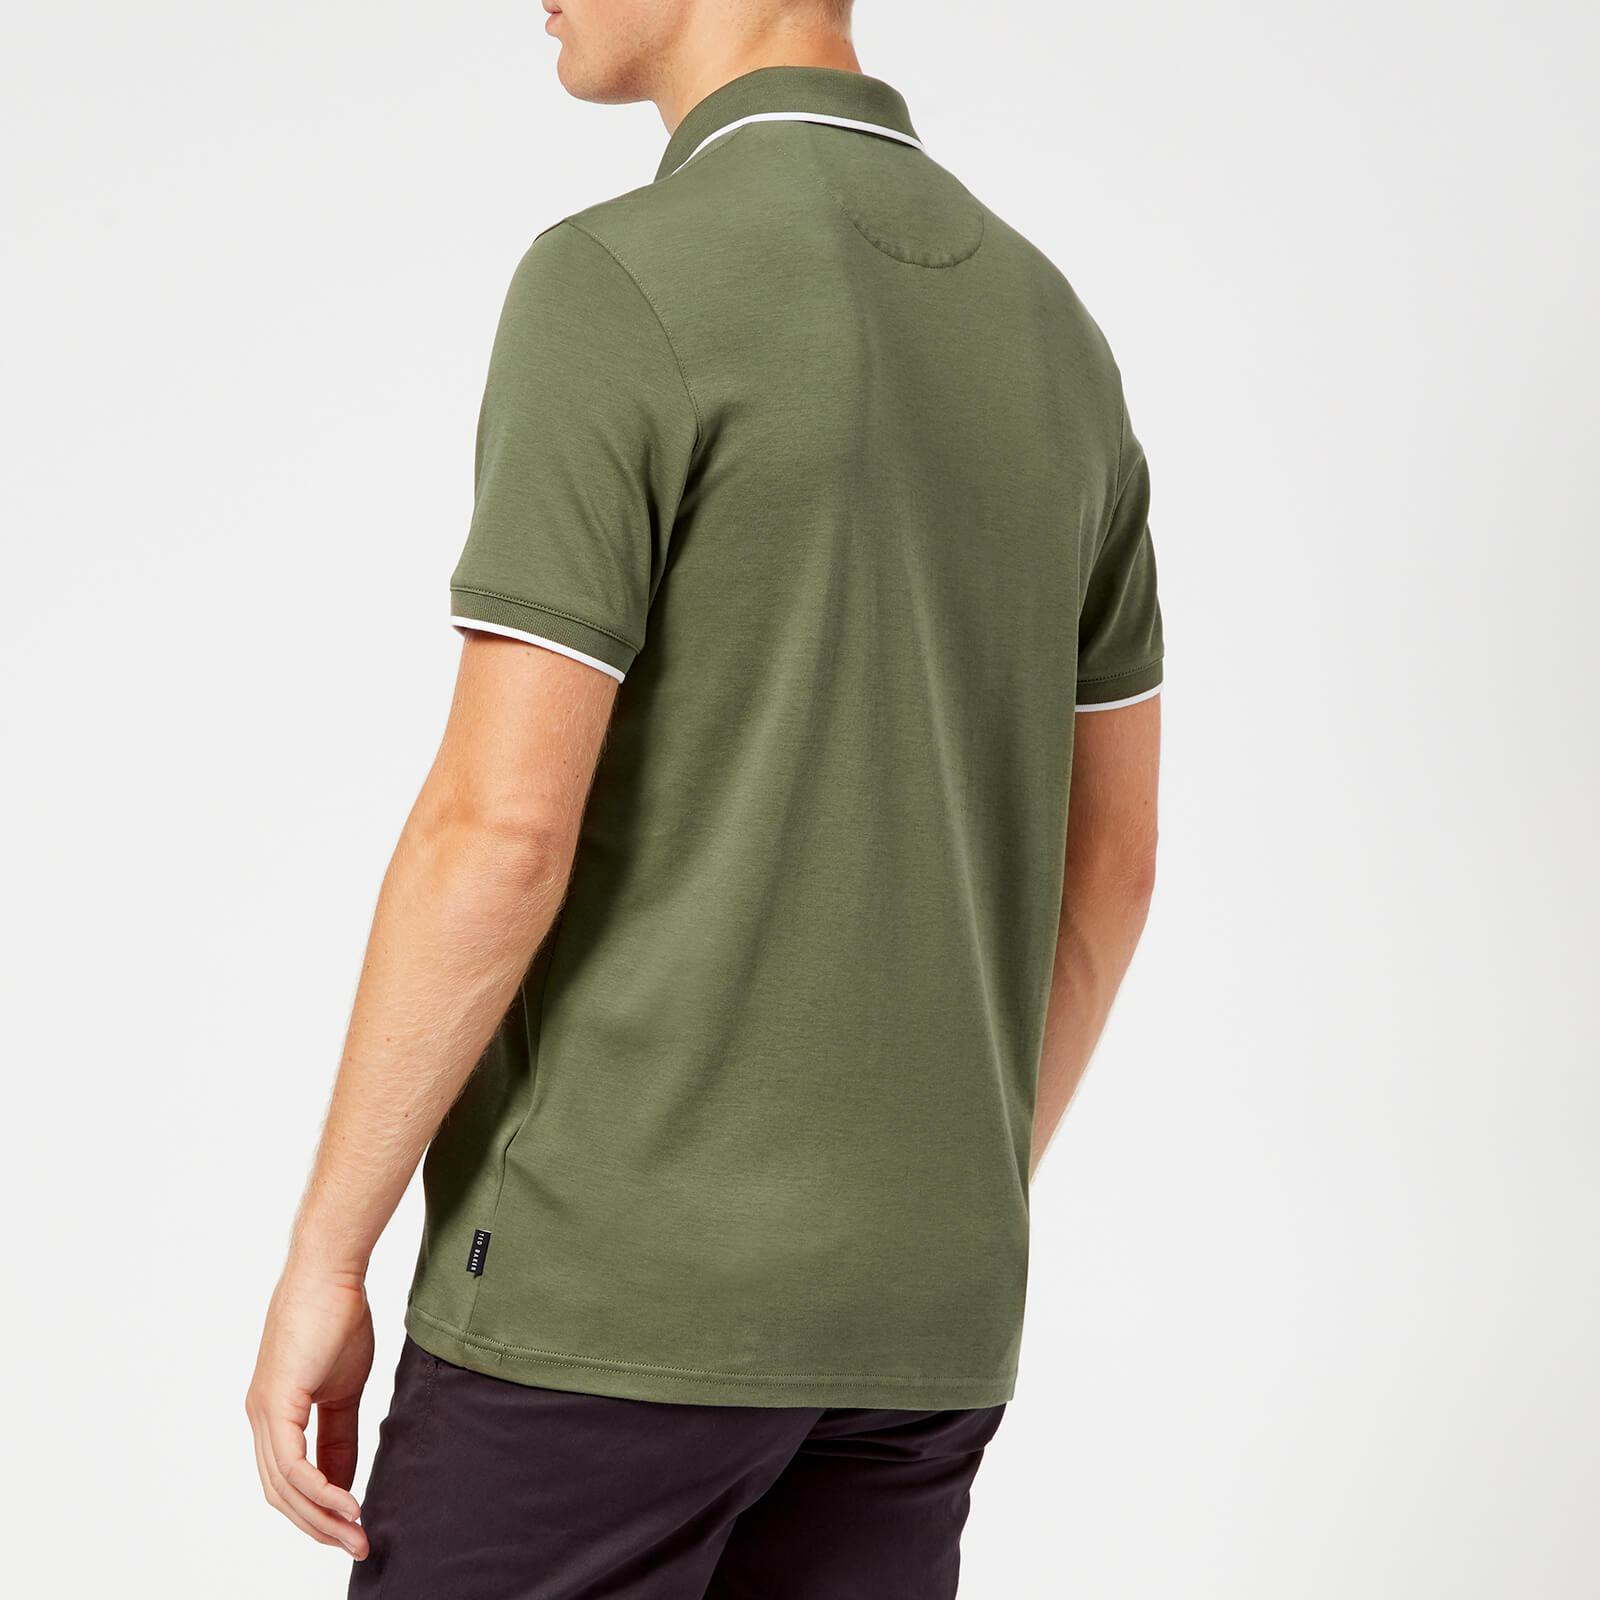 2351b5117 Ted Baker - Green Jelly Polo Shirt for Men - Lyst. View fullscreen